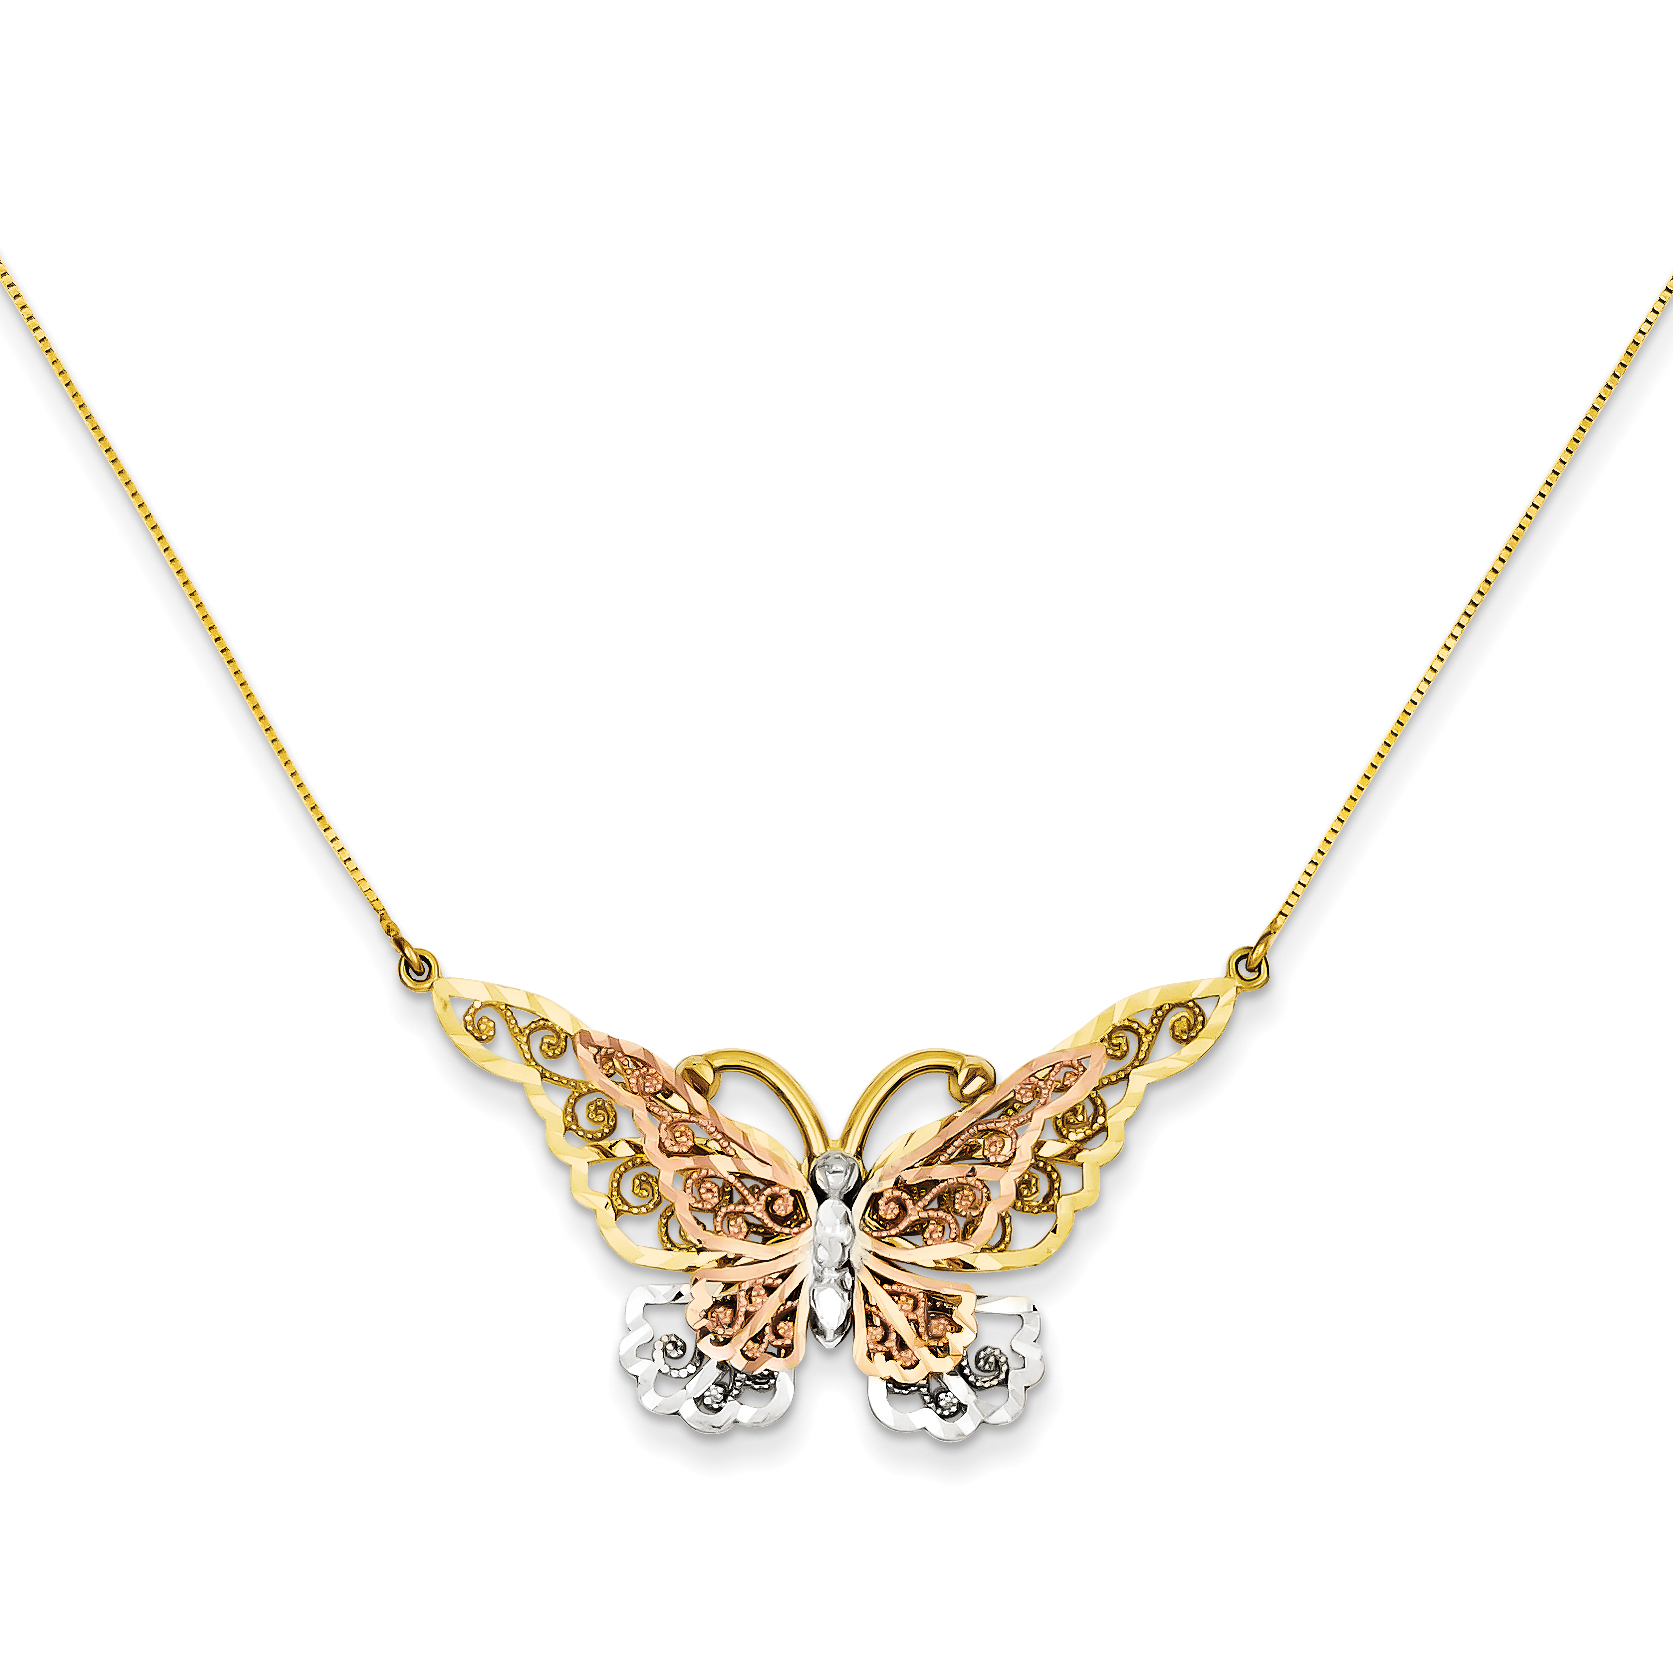 14k Yellow & Rose Gold w/ Rhodium Butterfly Necklace - 6625A